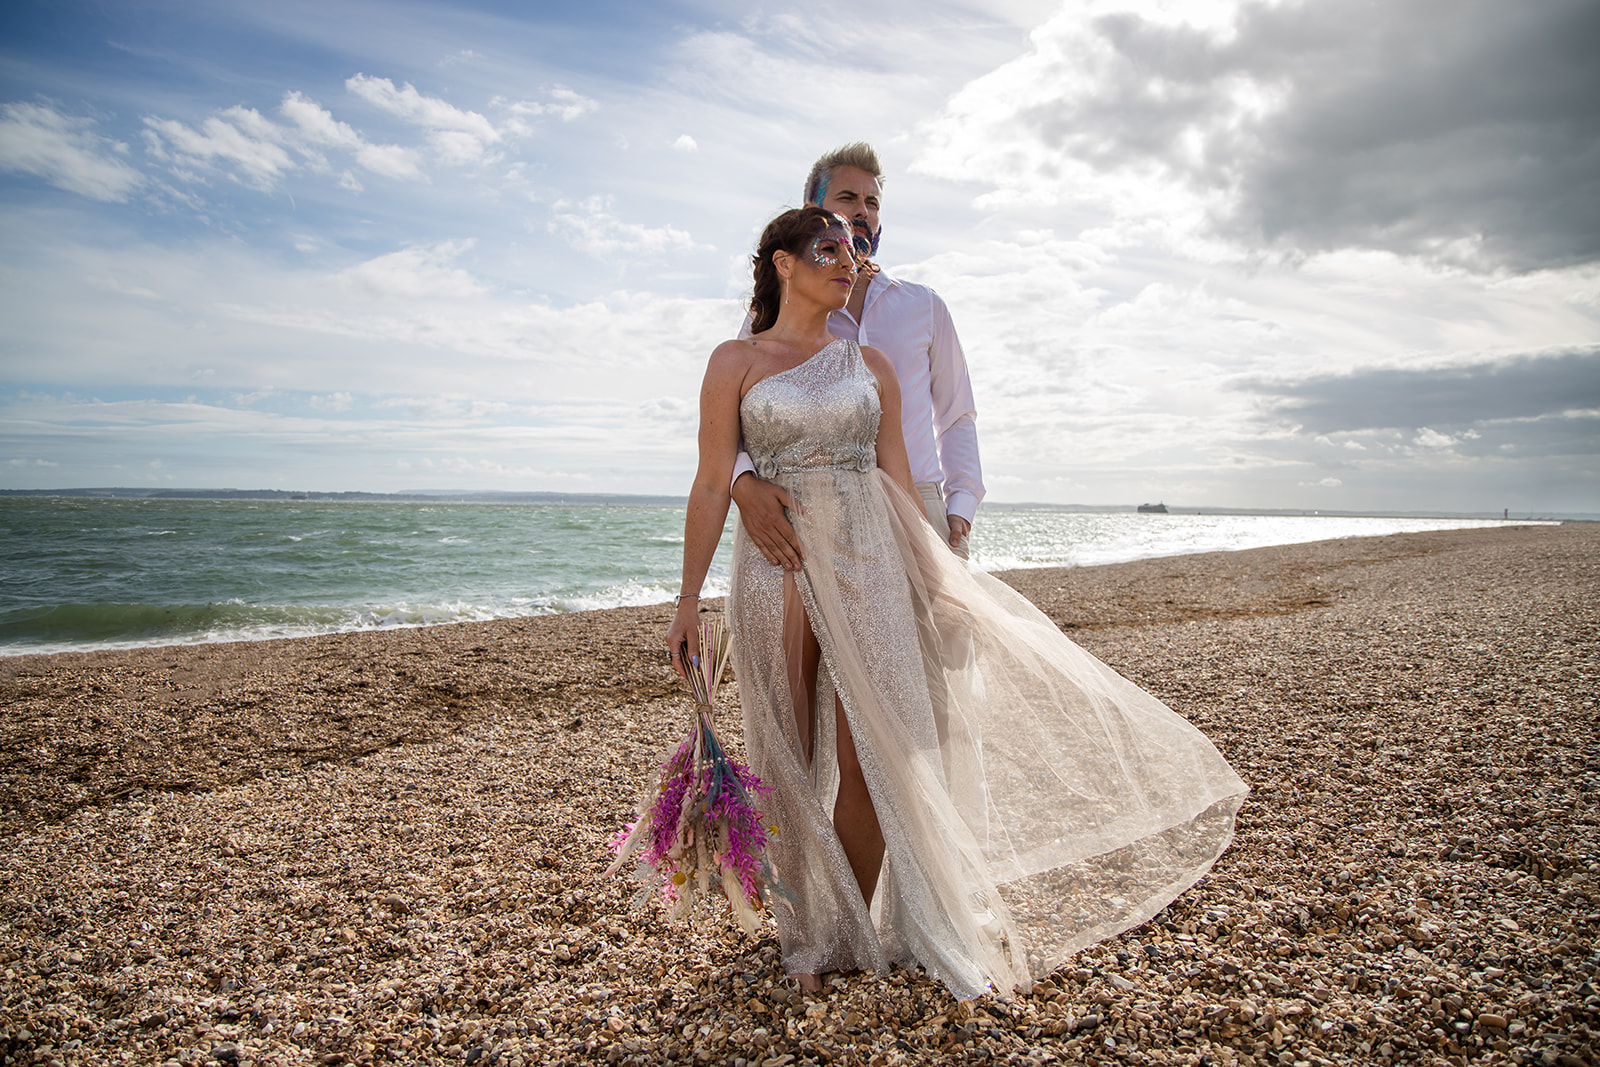 mermaid wedding - beach wedding - quirky wedding - unique wedding - alternative seaside wedding - alternative wedding - bride and groom at beach - mermaid themed wedding